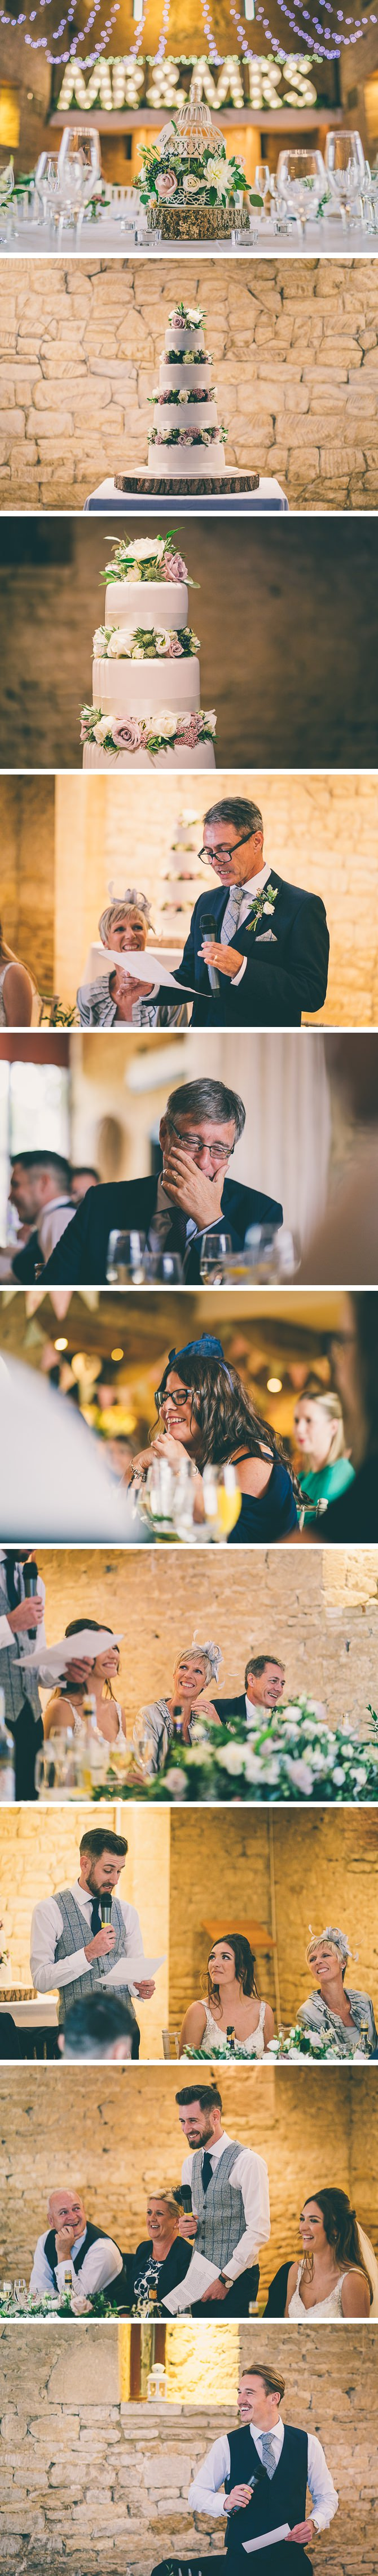 Speeches at Great Tythe Barn